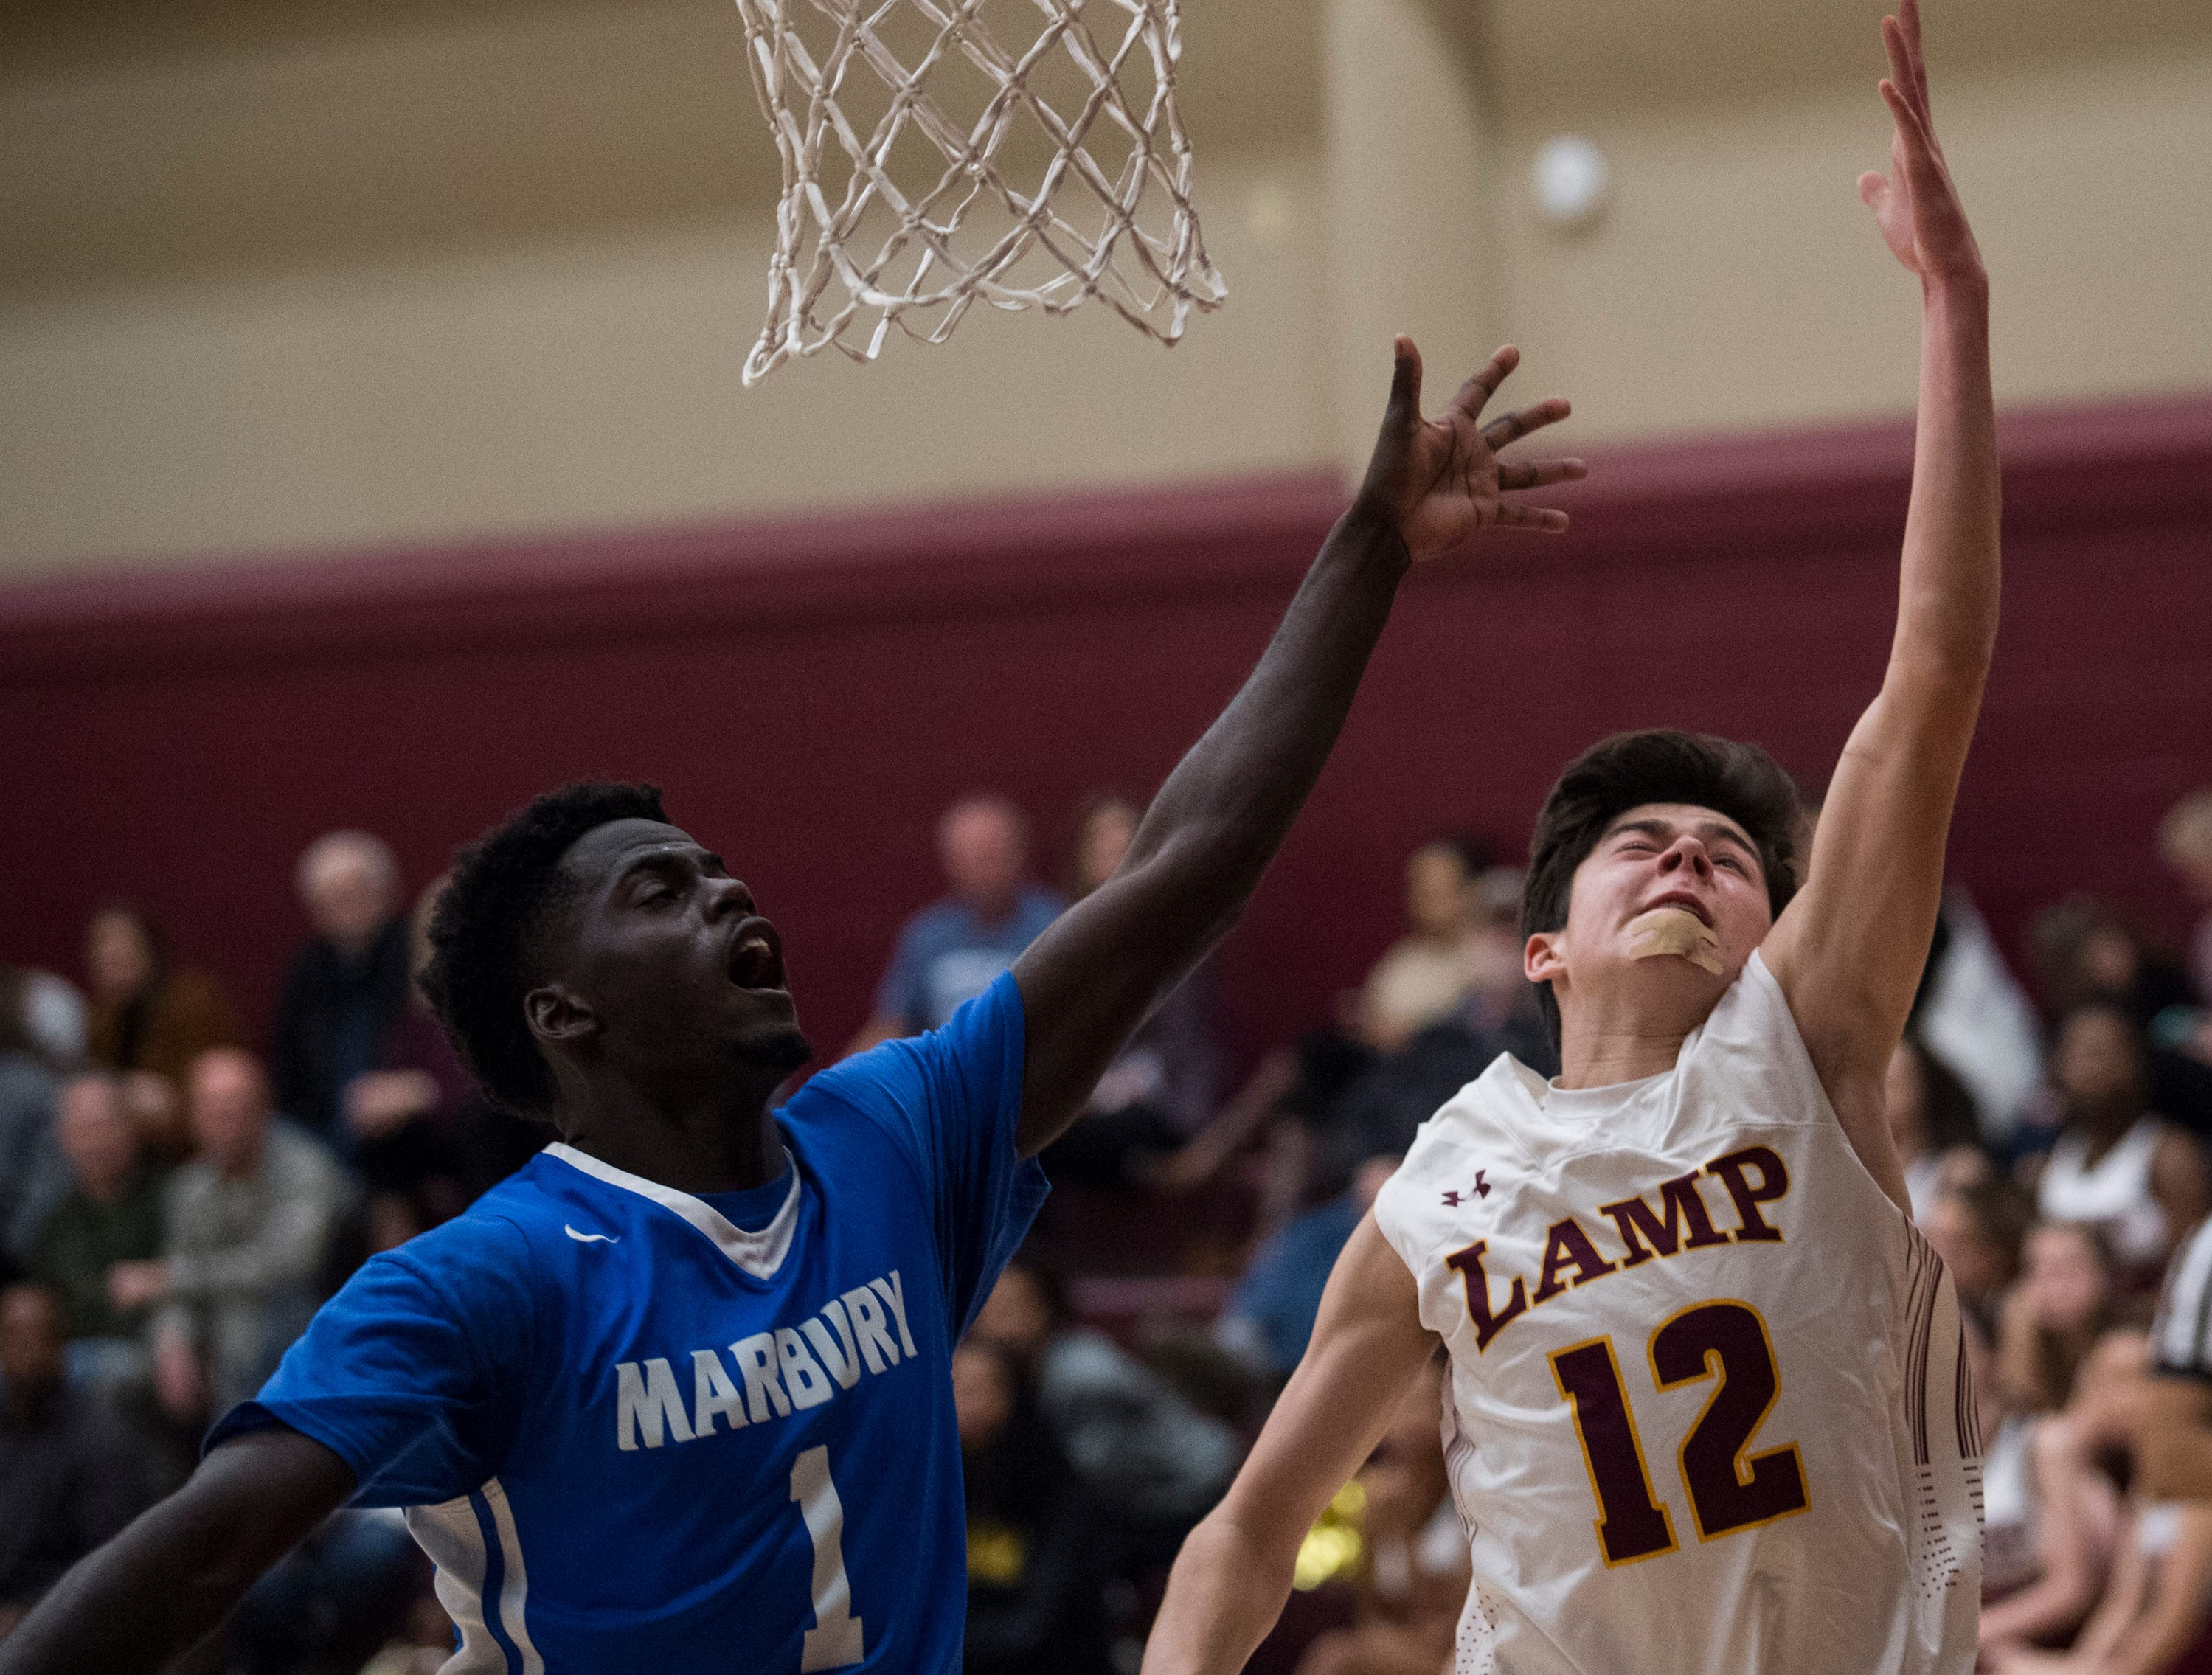 LAMP's Mitchell Sloane (12) goes up for a layup over Marbury's Jakhiel Waller (1) at LAMP high school in Montgomery, Ala., on Thursday, Jan. 10, 2019. LAMP defeated Marbury 85-72.